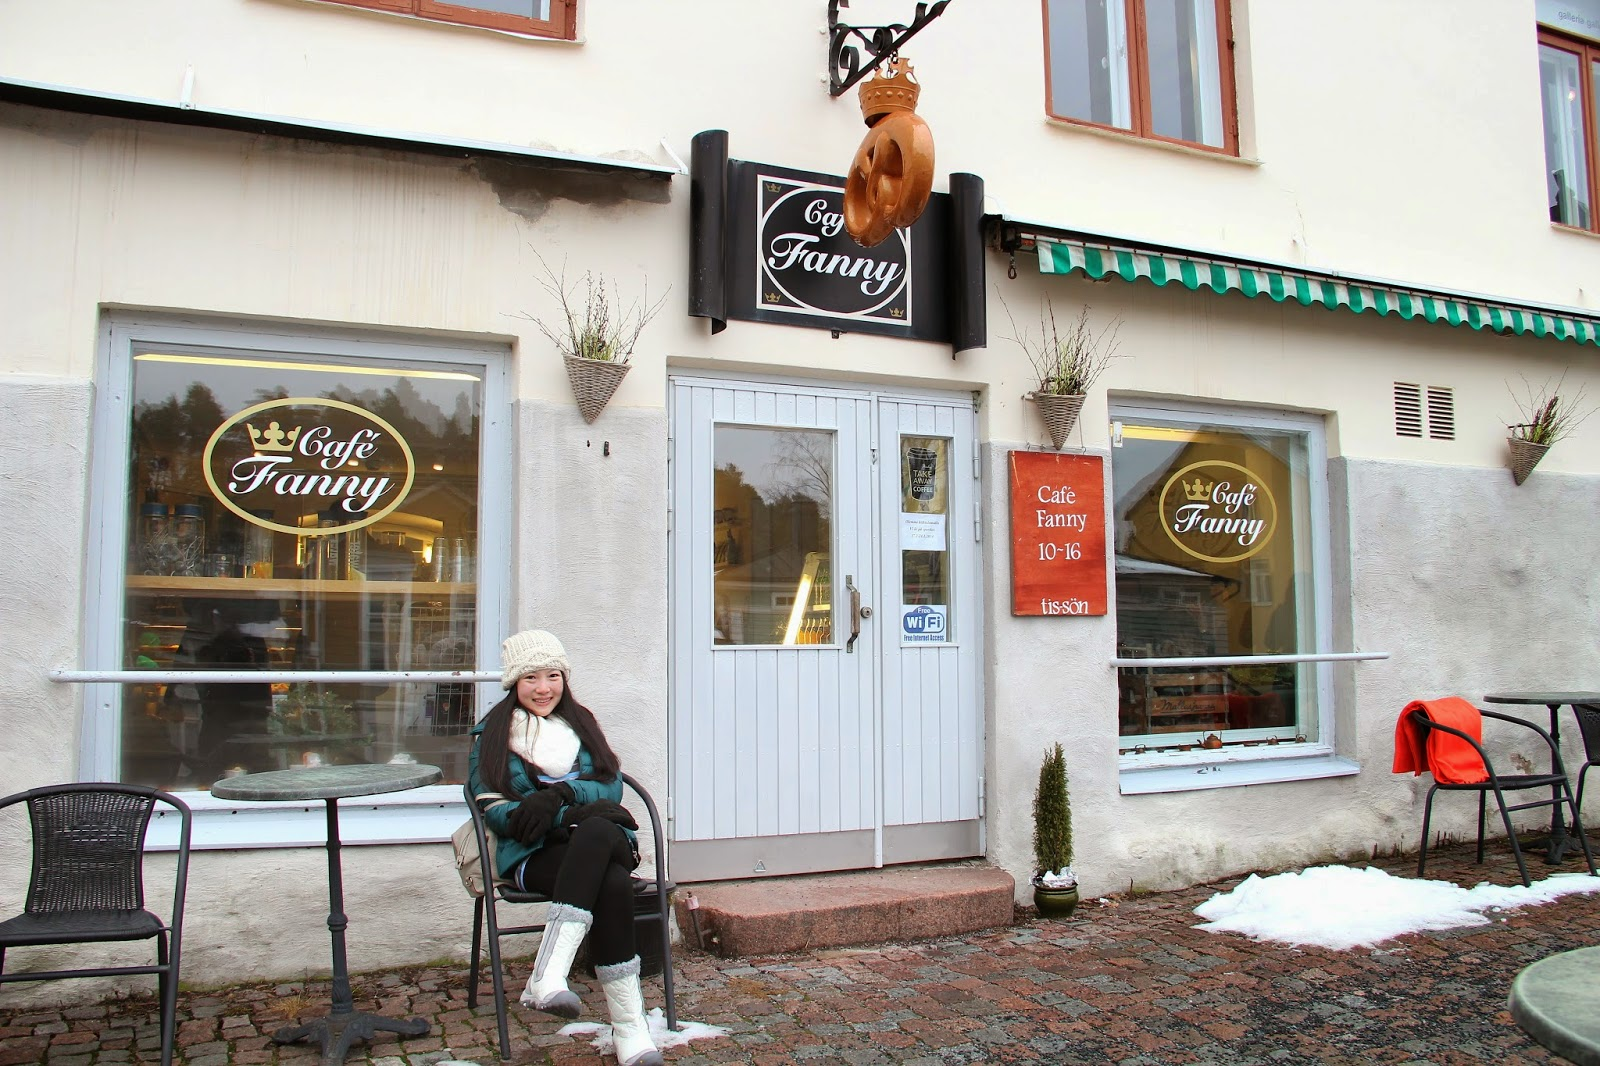 Cafe Fanny in Porvoo, Finland